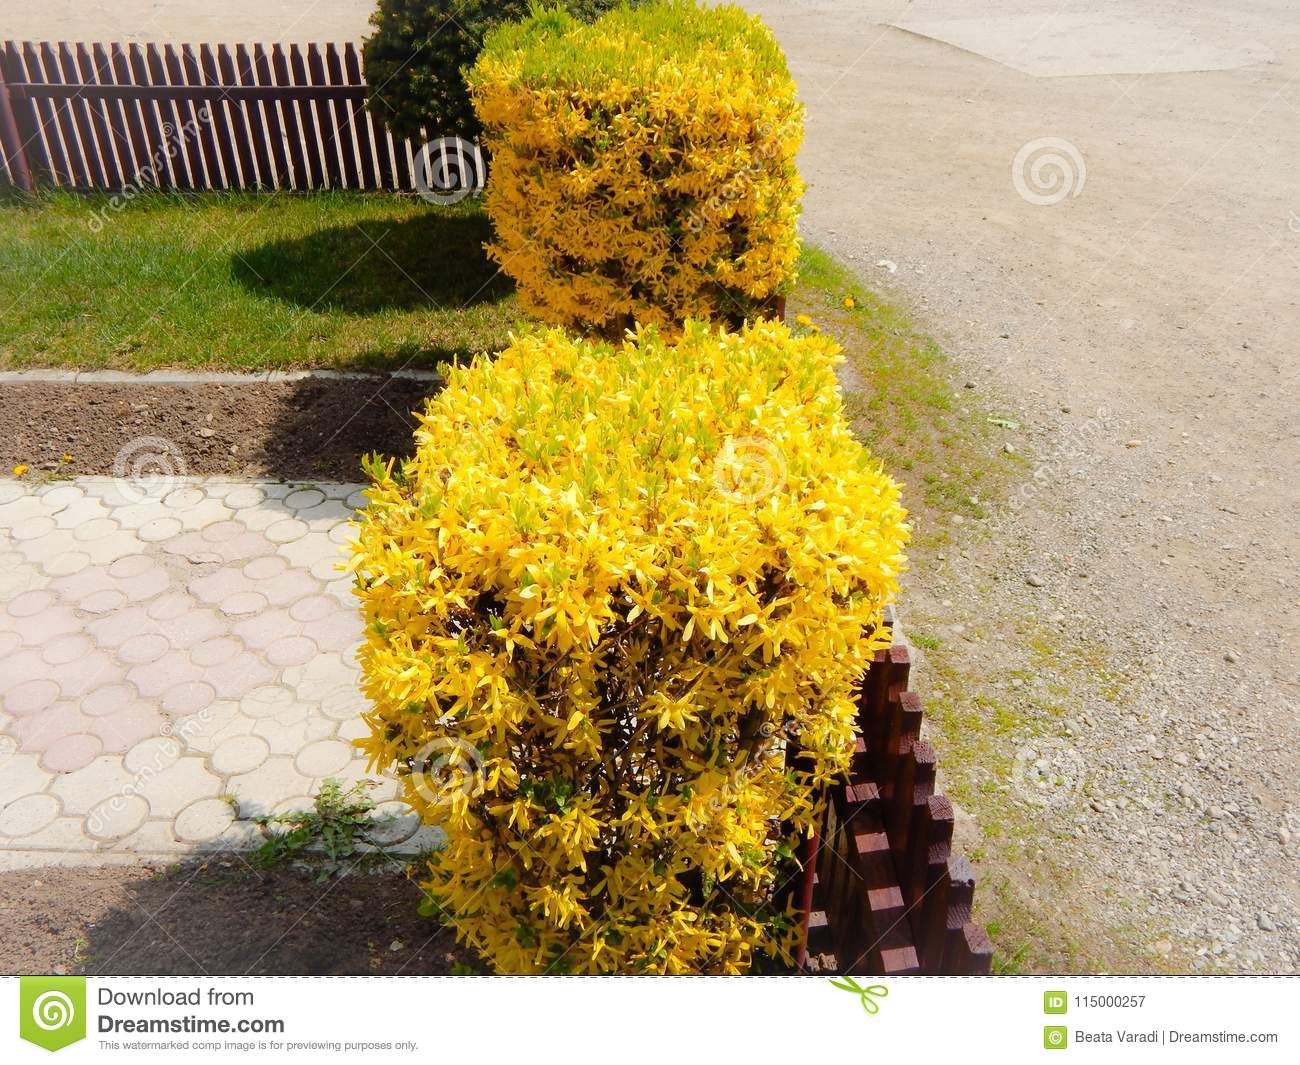 Bushes with yellow flowers with a walkway stock image image of download bushes with yellow flowers with a walkway stock image image of fragility road mightylinksfo